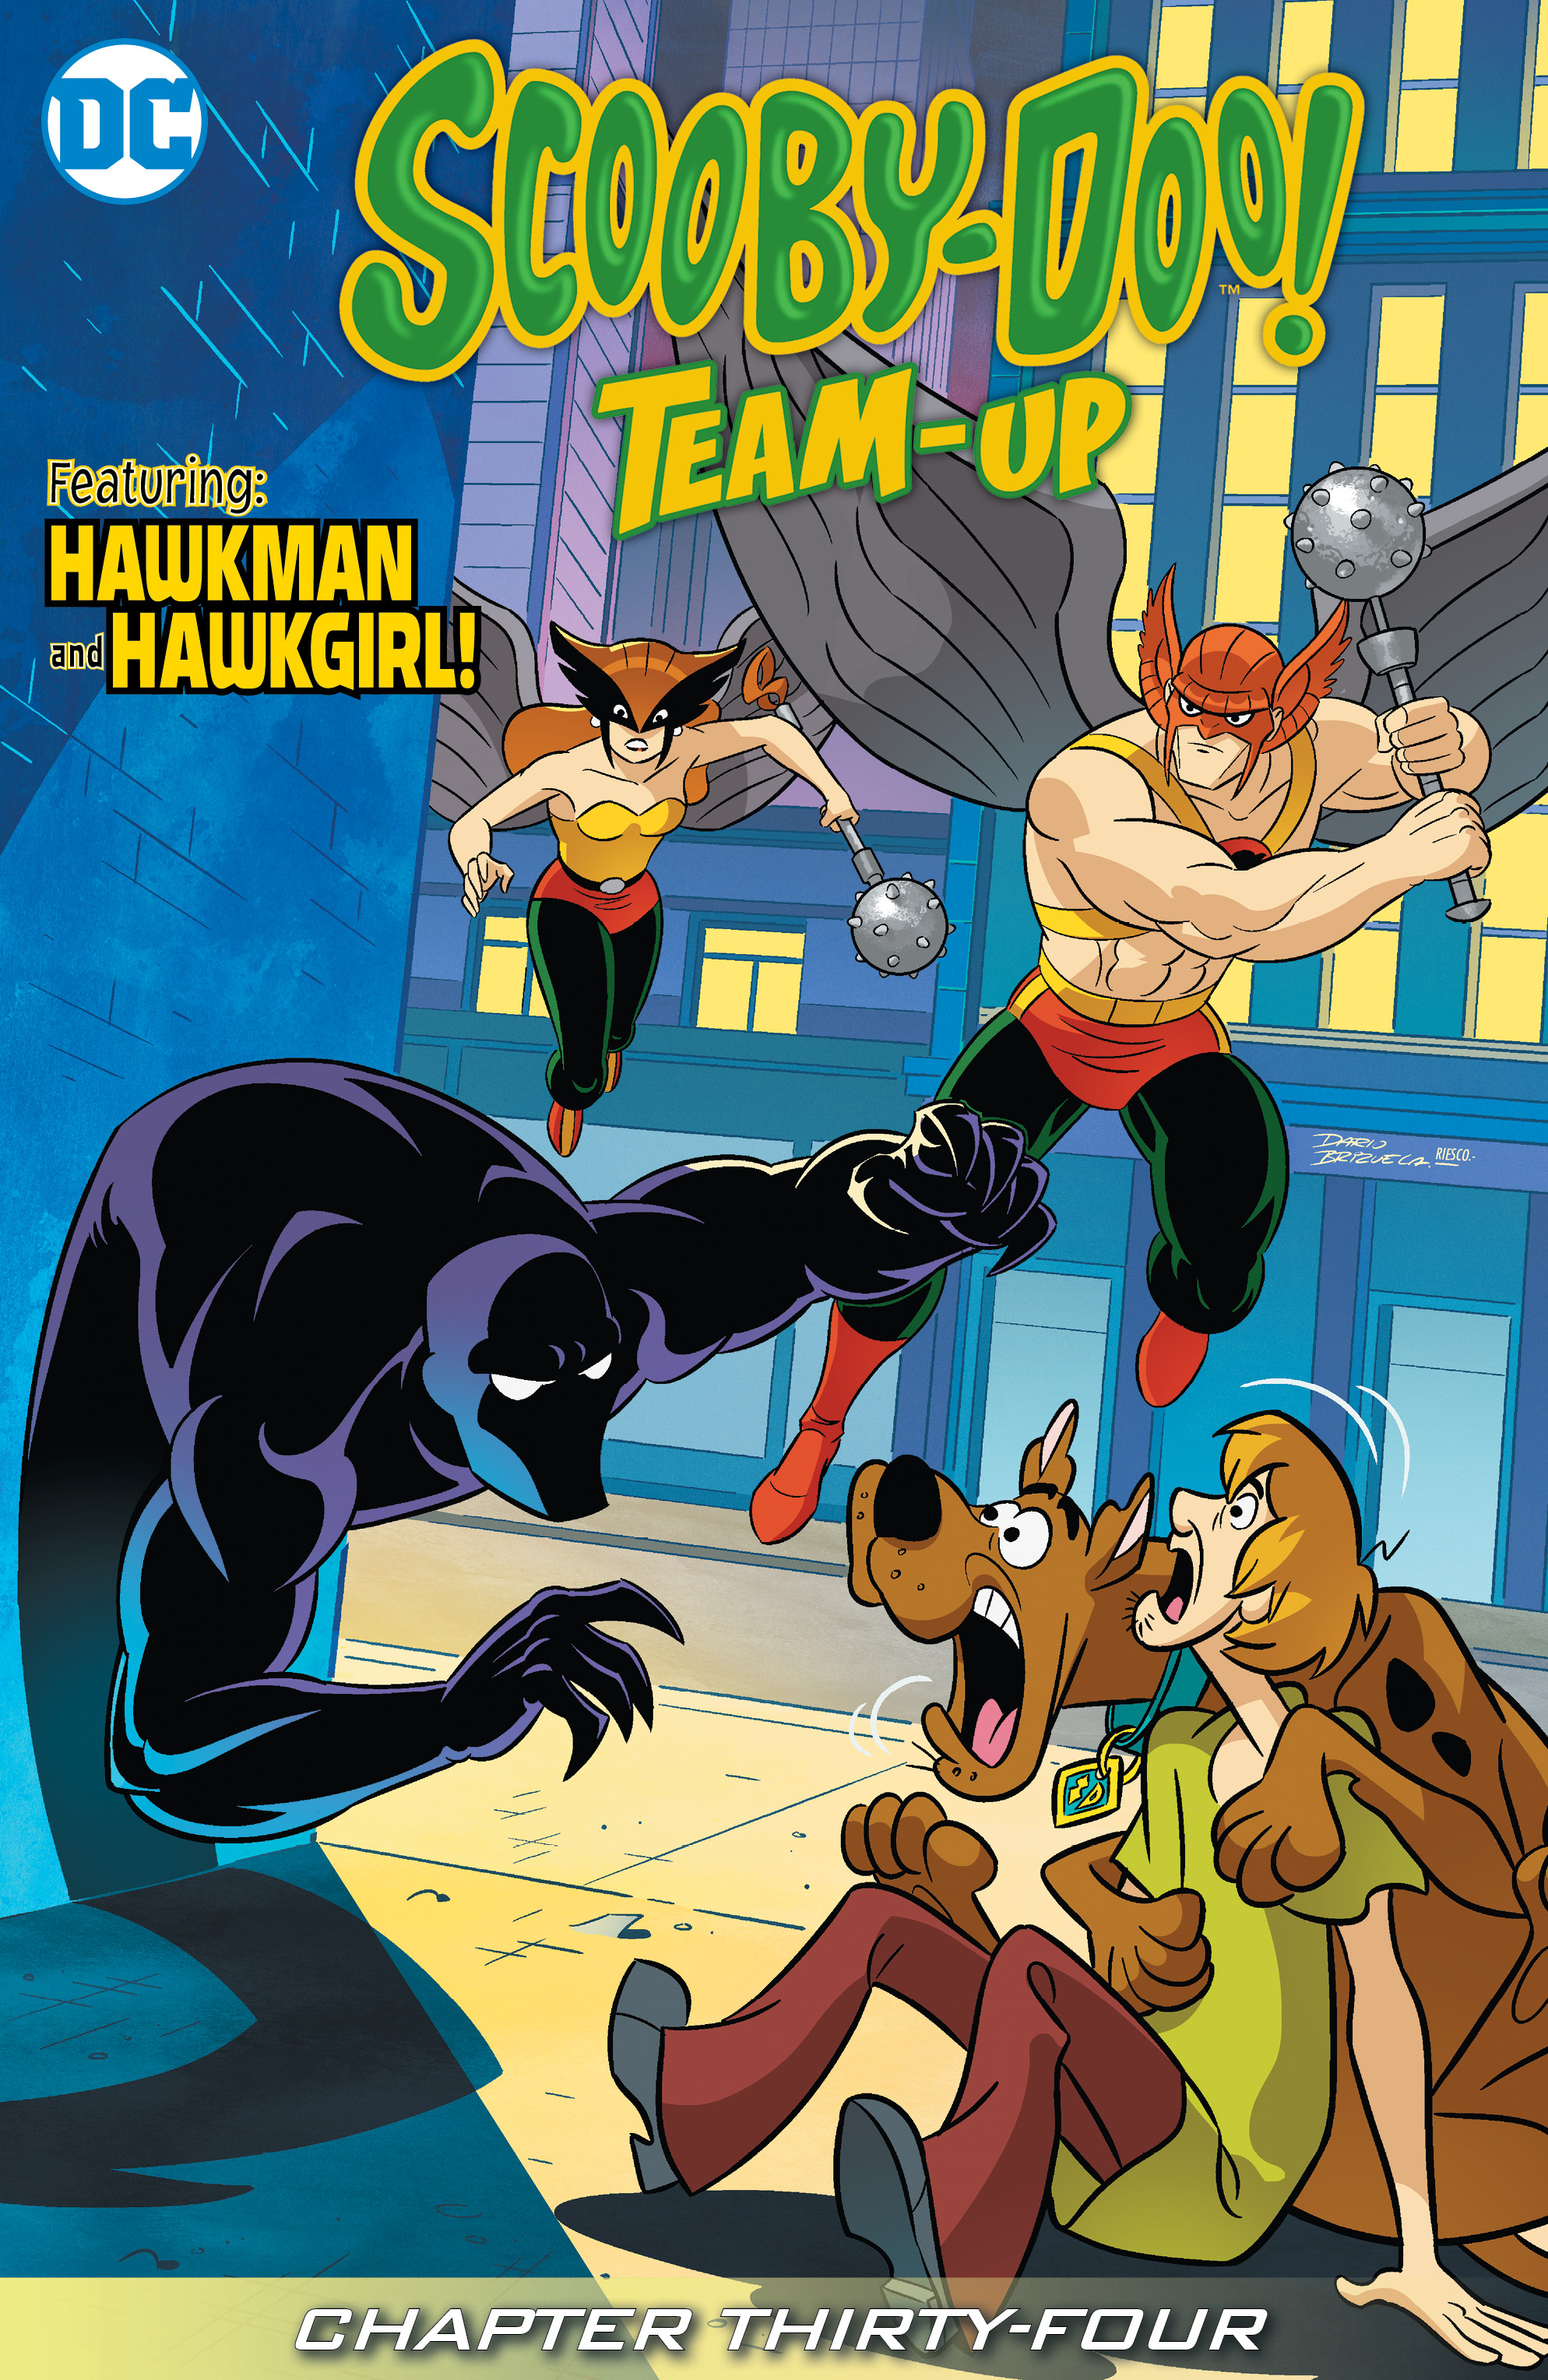 Read online Scooby-Doo! Team-Up comic -  Issue #34 - 2